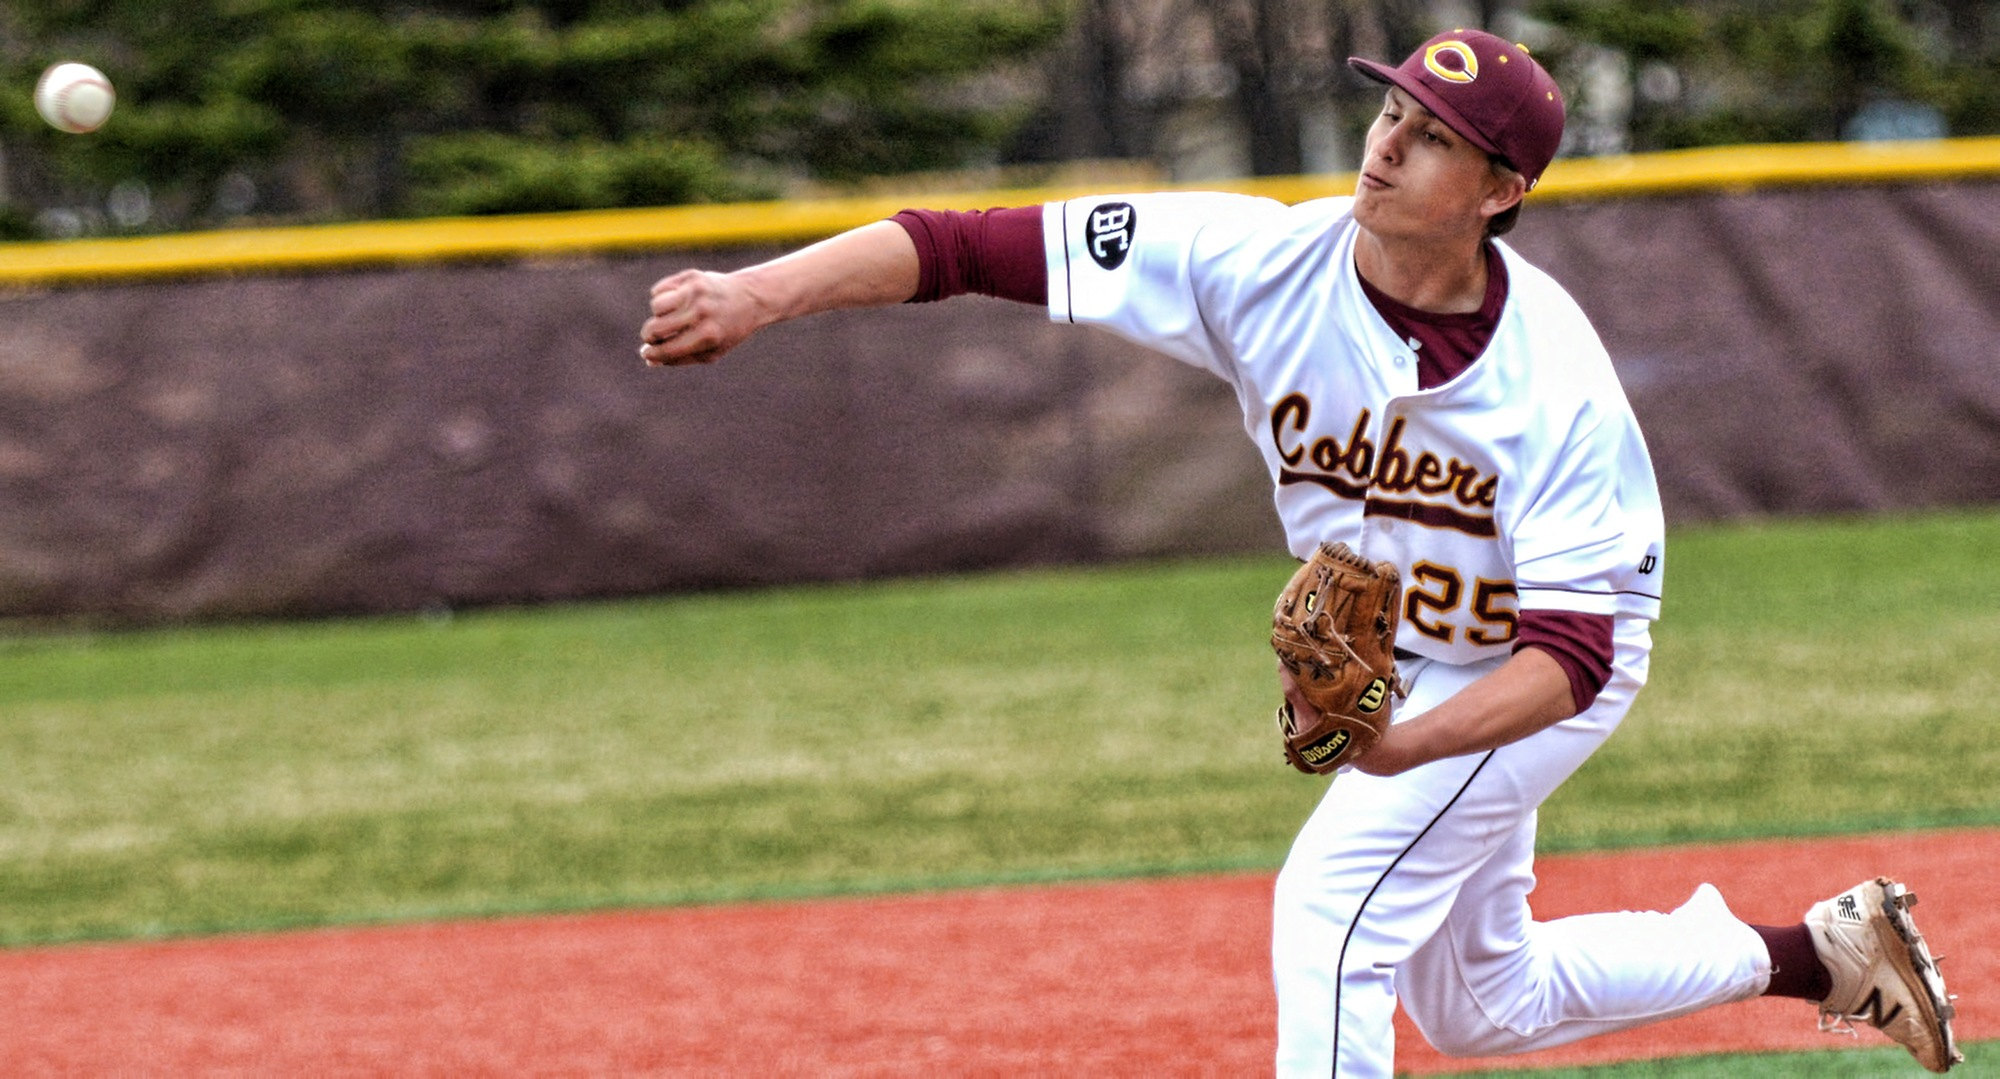 Sophomore Alex Erickson was one of four Cobber pitcher who limited Dominican to only two earned runs and five hits in their game against Dominican.